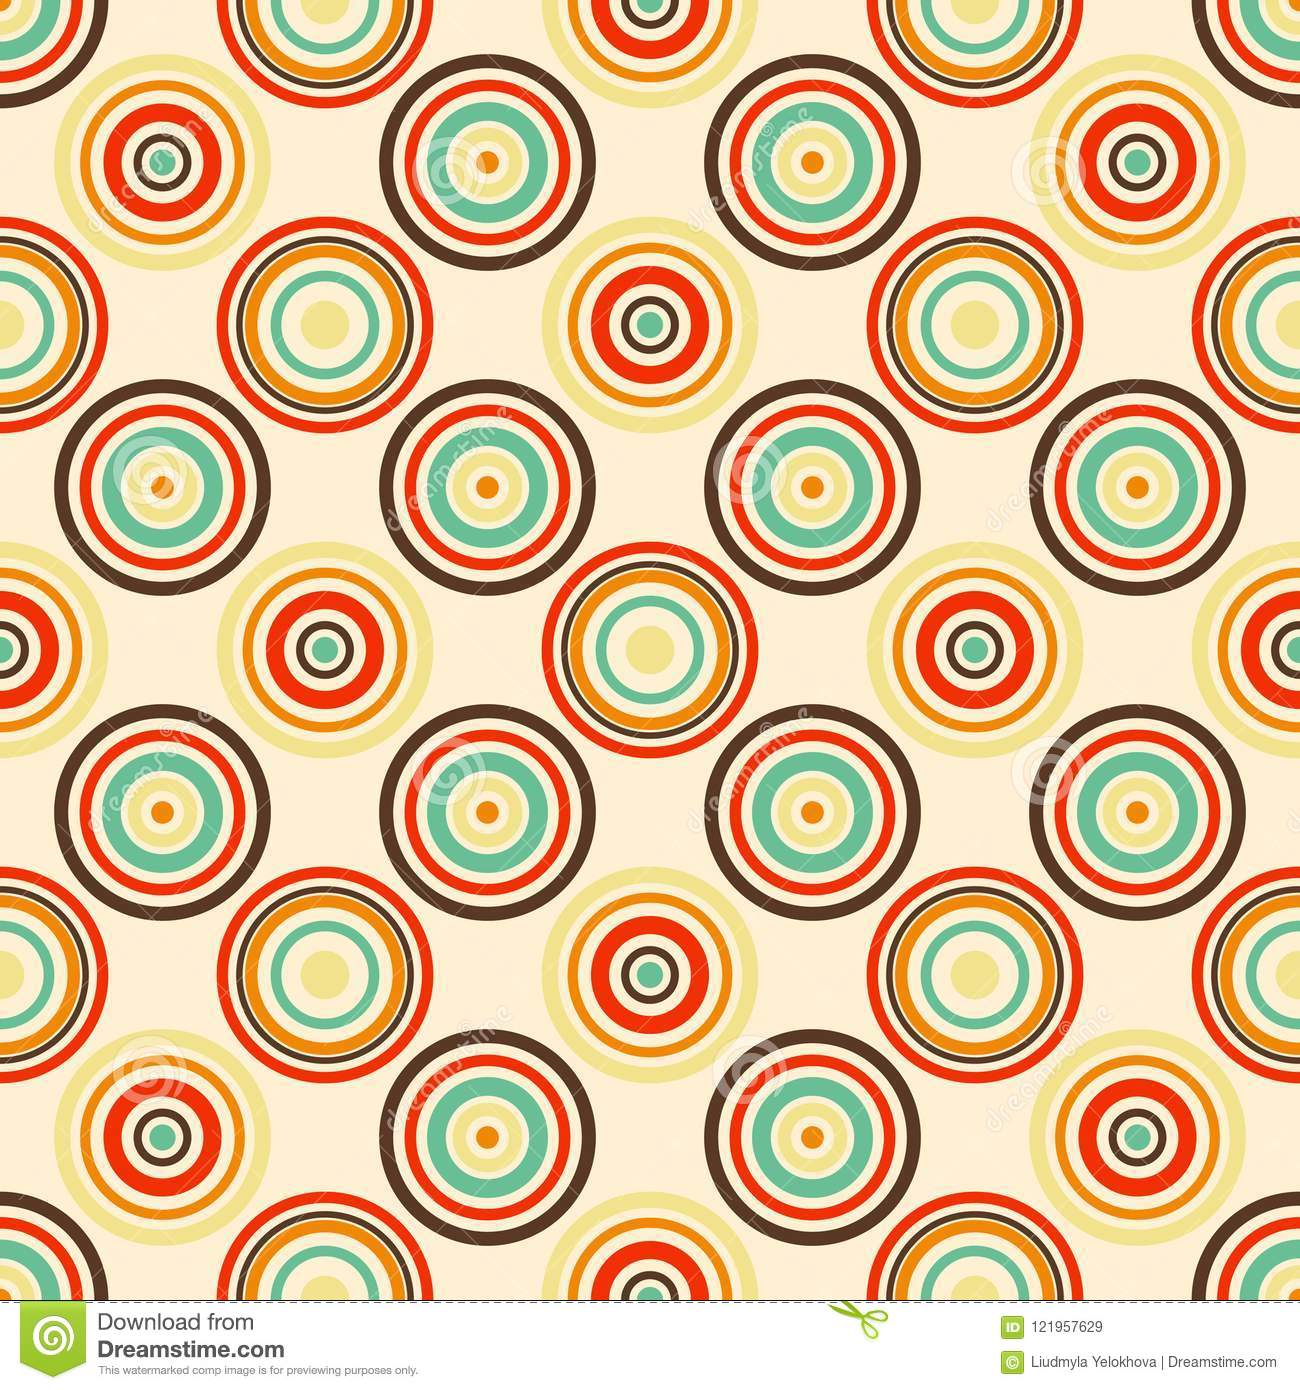 Old paper seamless pattern with colorful retro rings